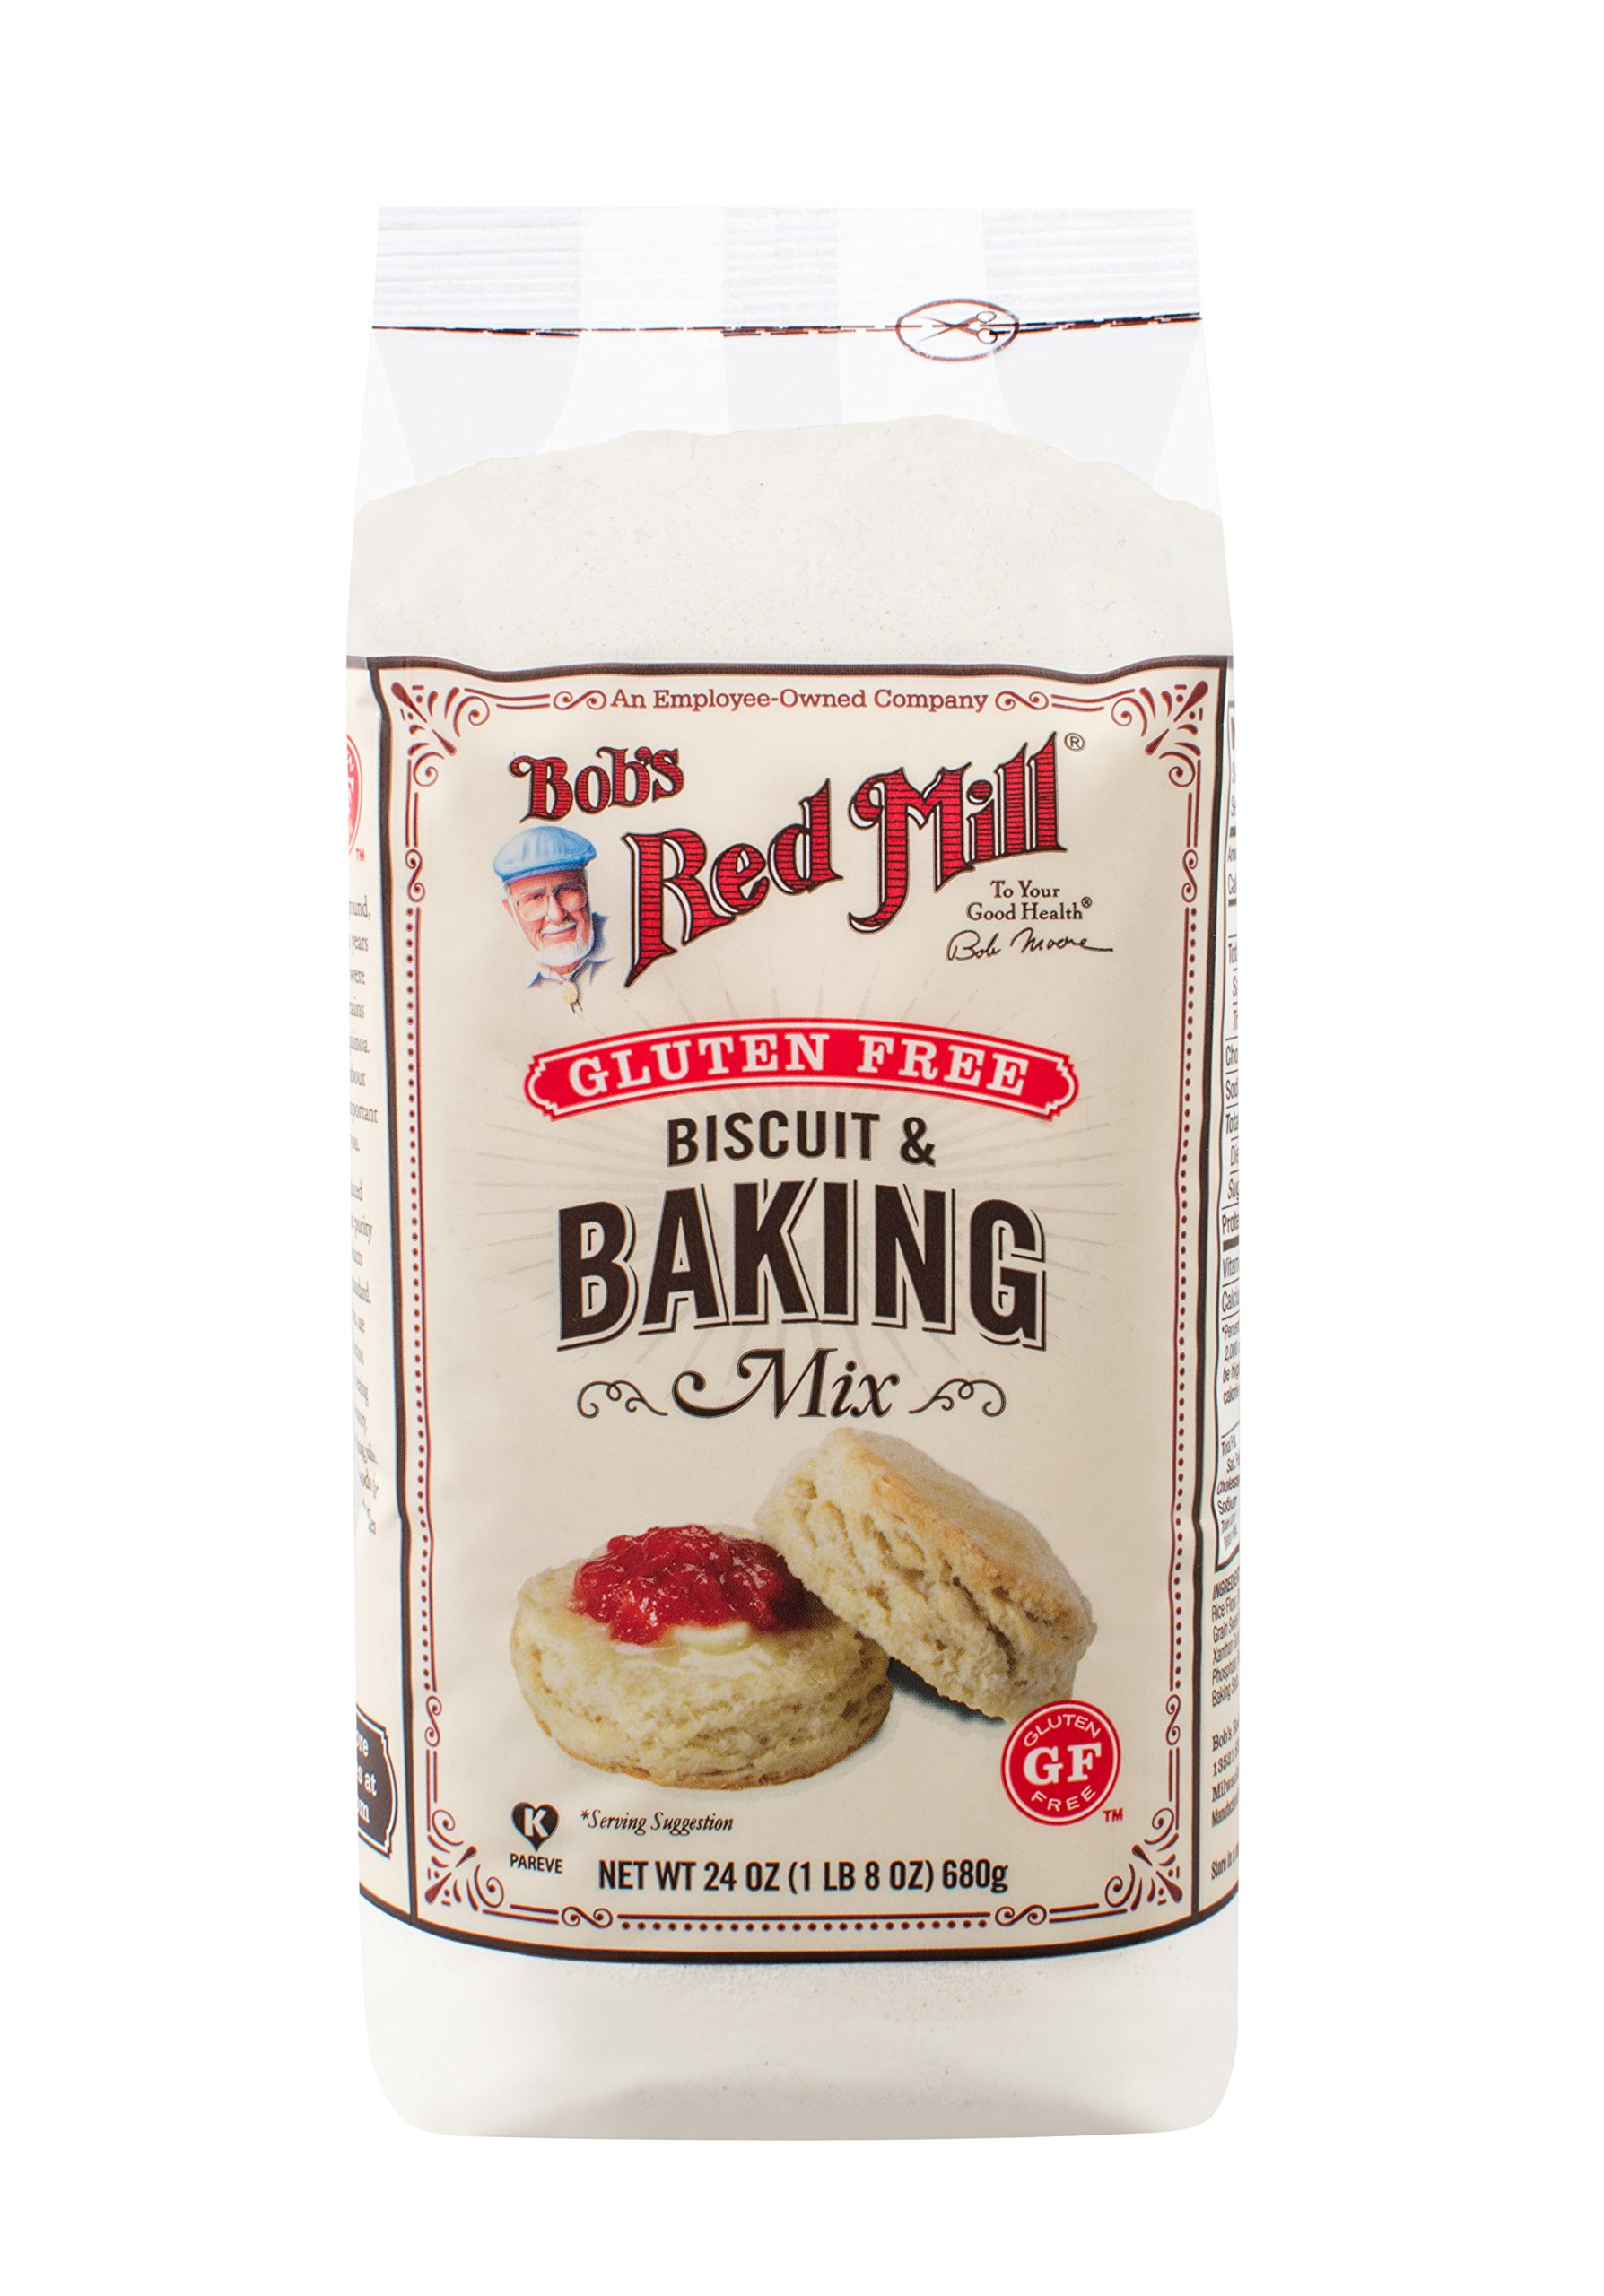 Bob's Red Mill Gluten Free Biscuit & Baking Mix, 24-ounce